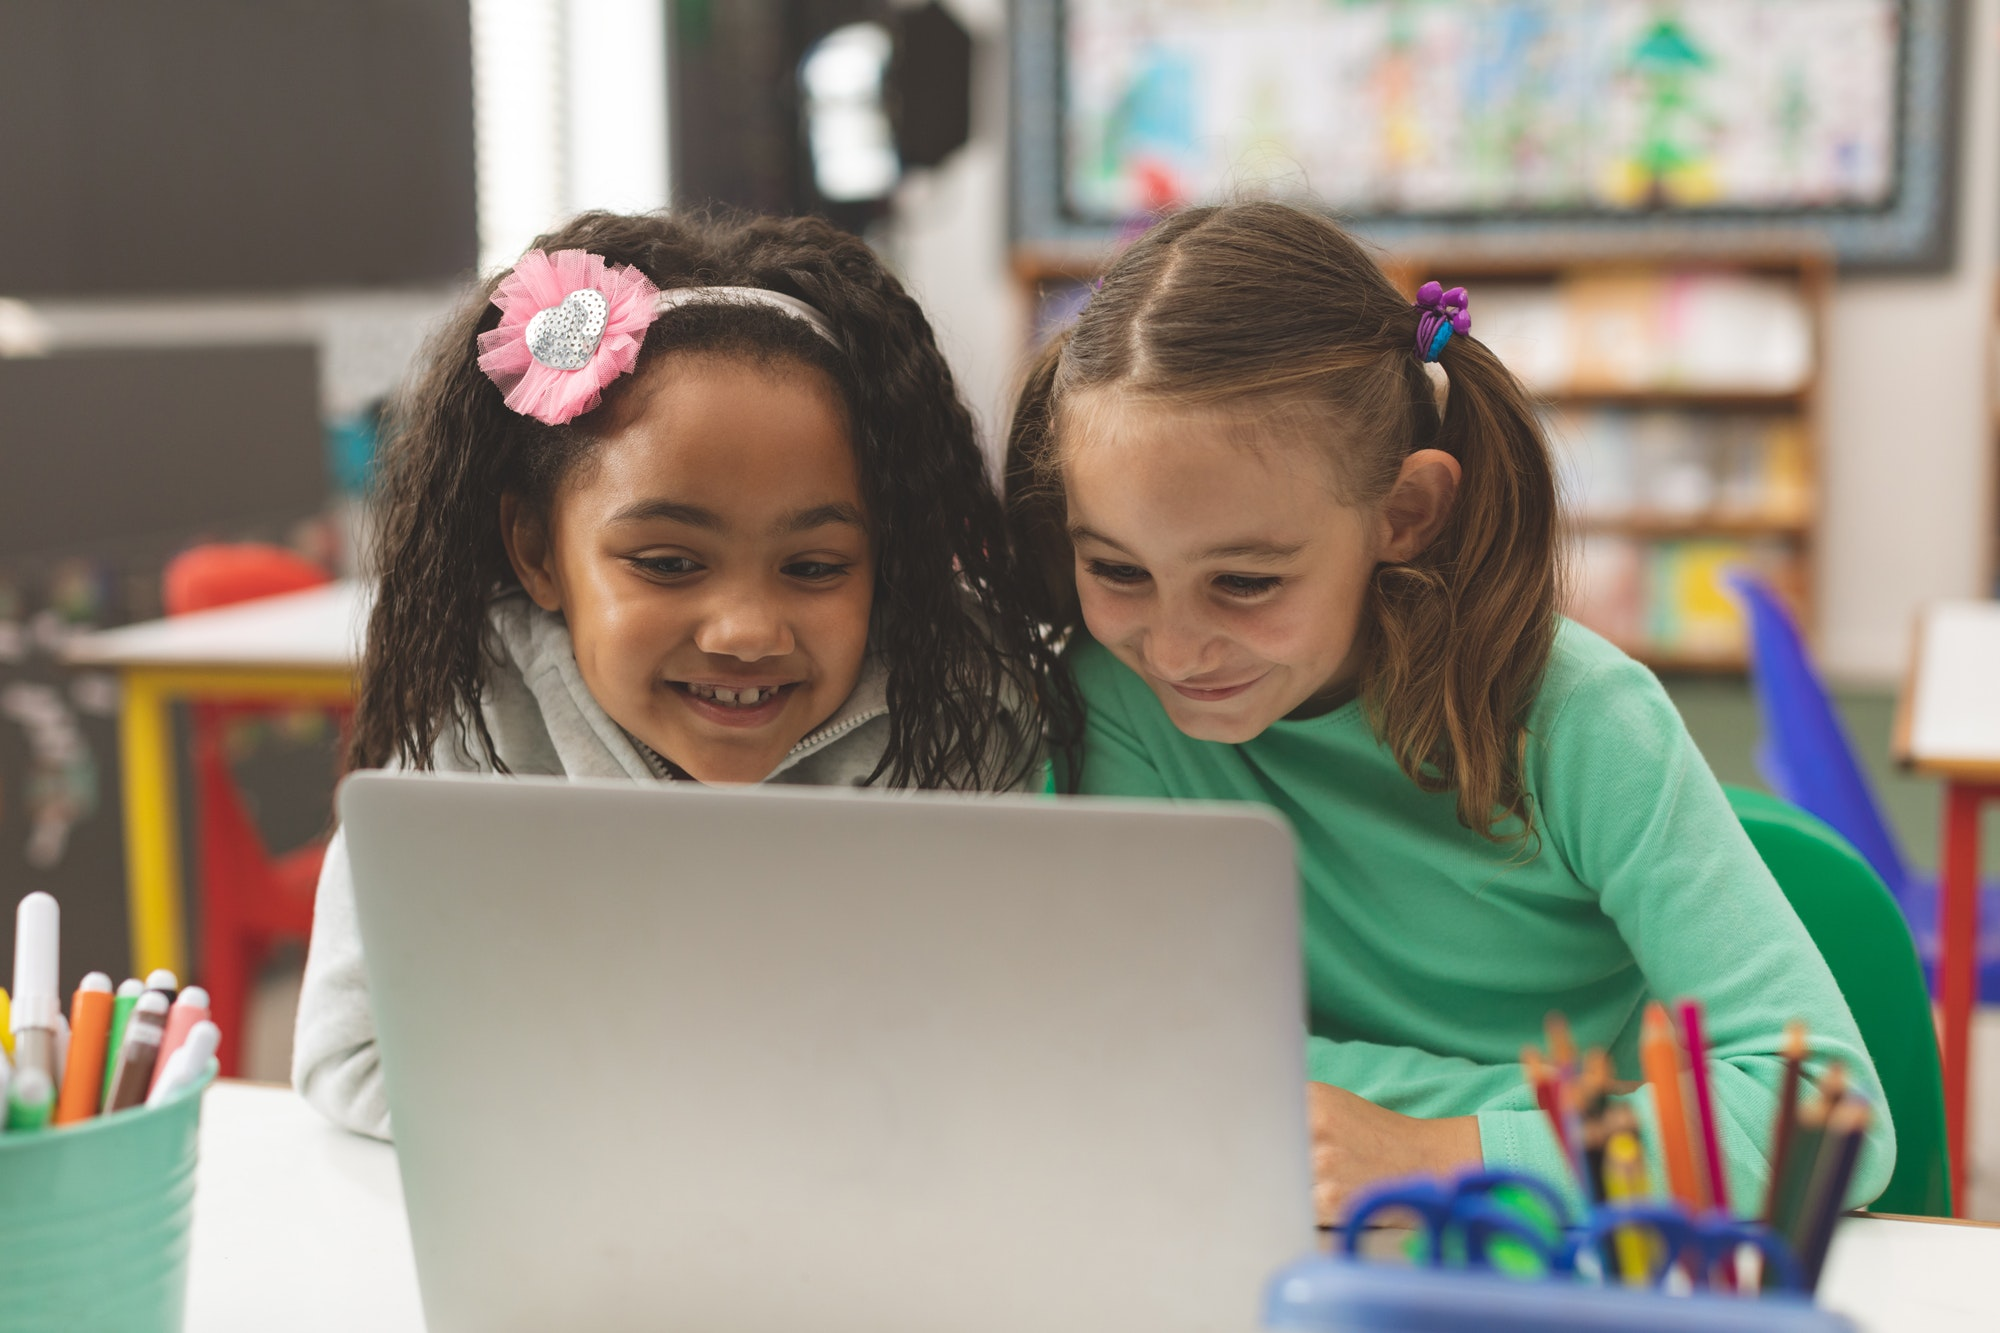 Schoolgirl smiling while they working on their computer in classroom at school